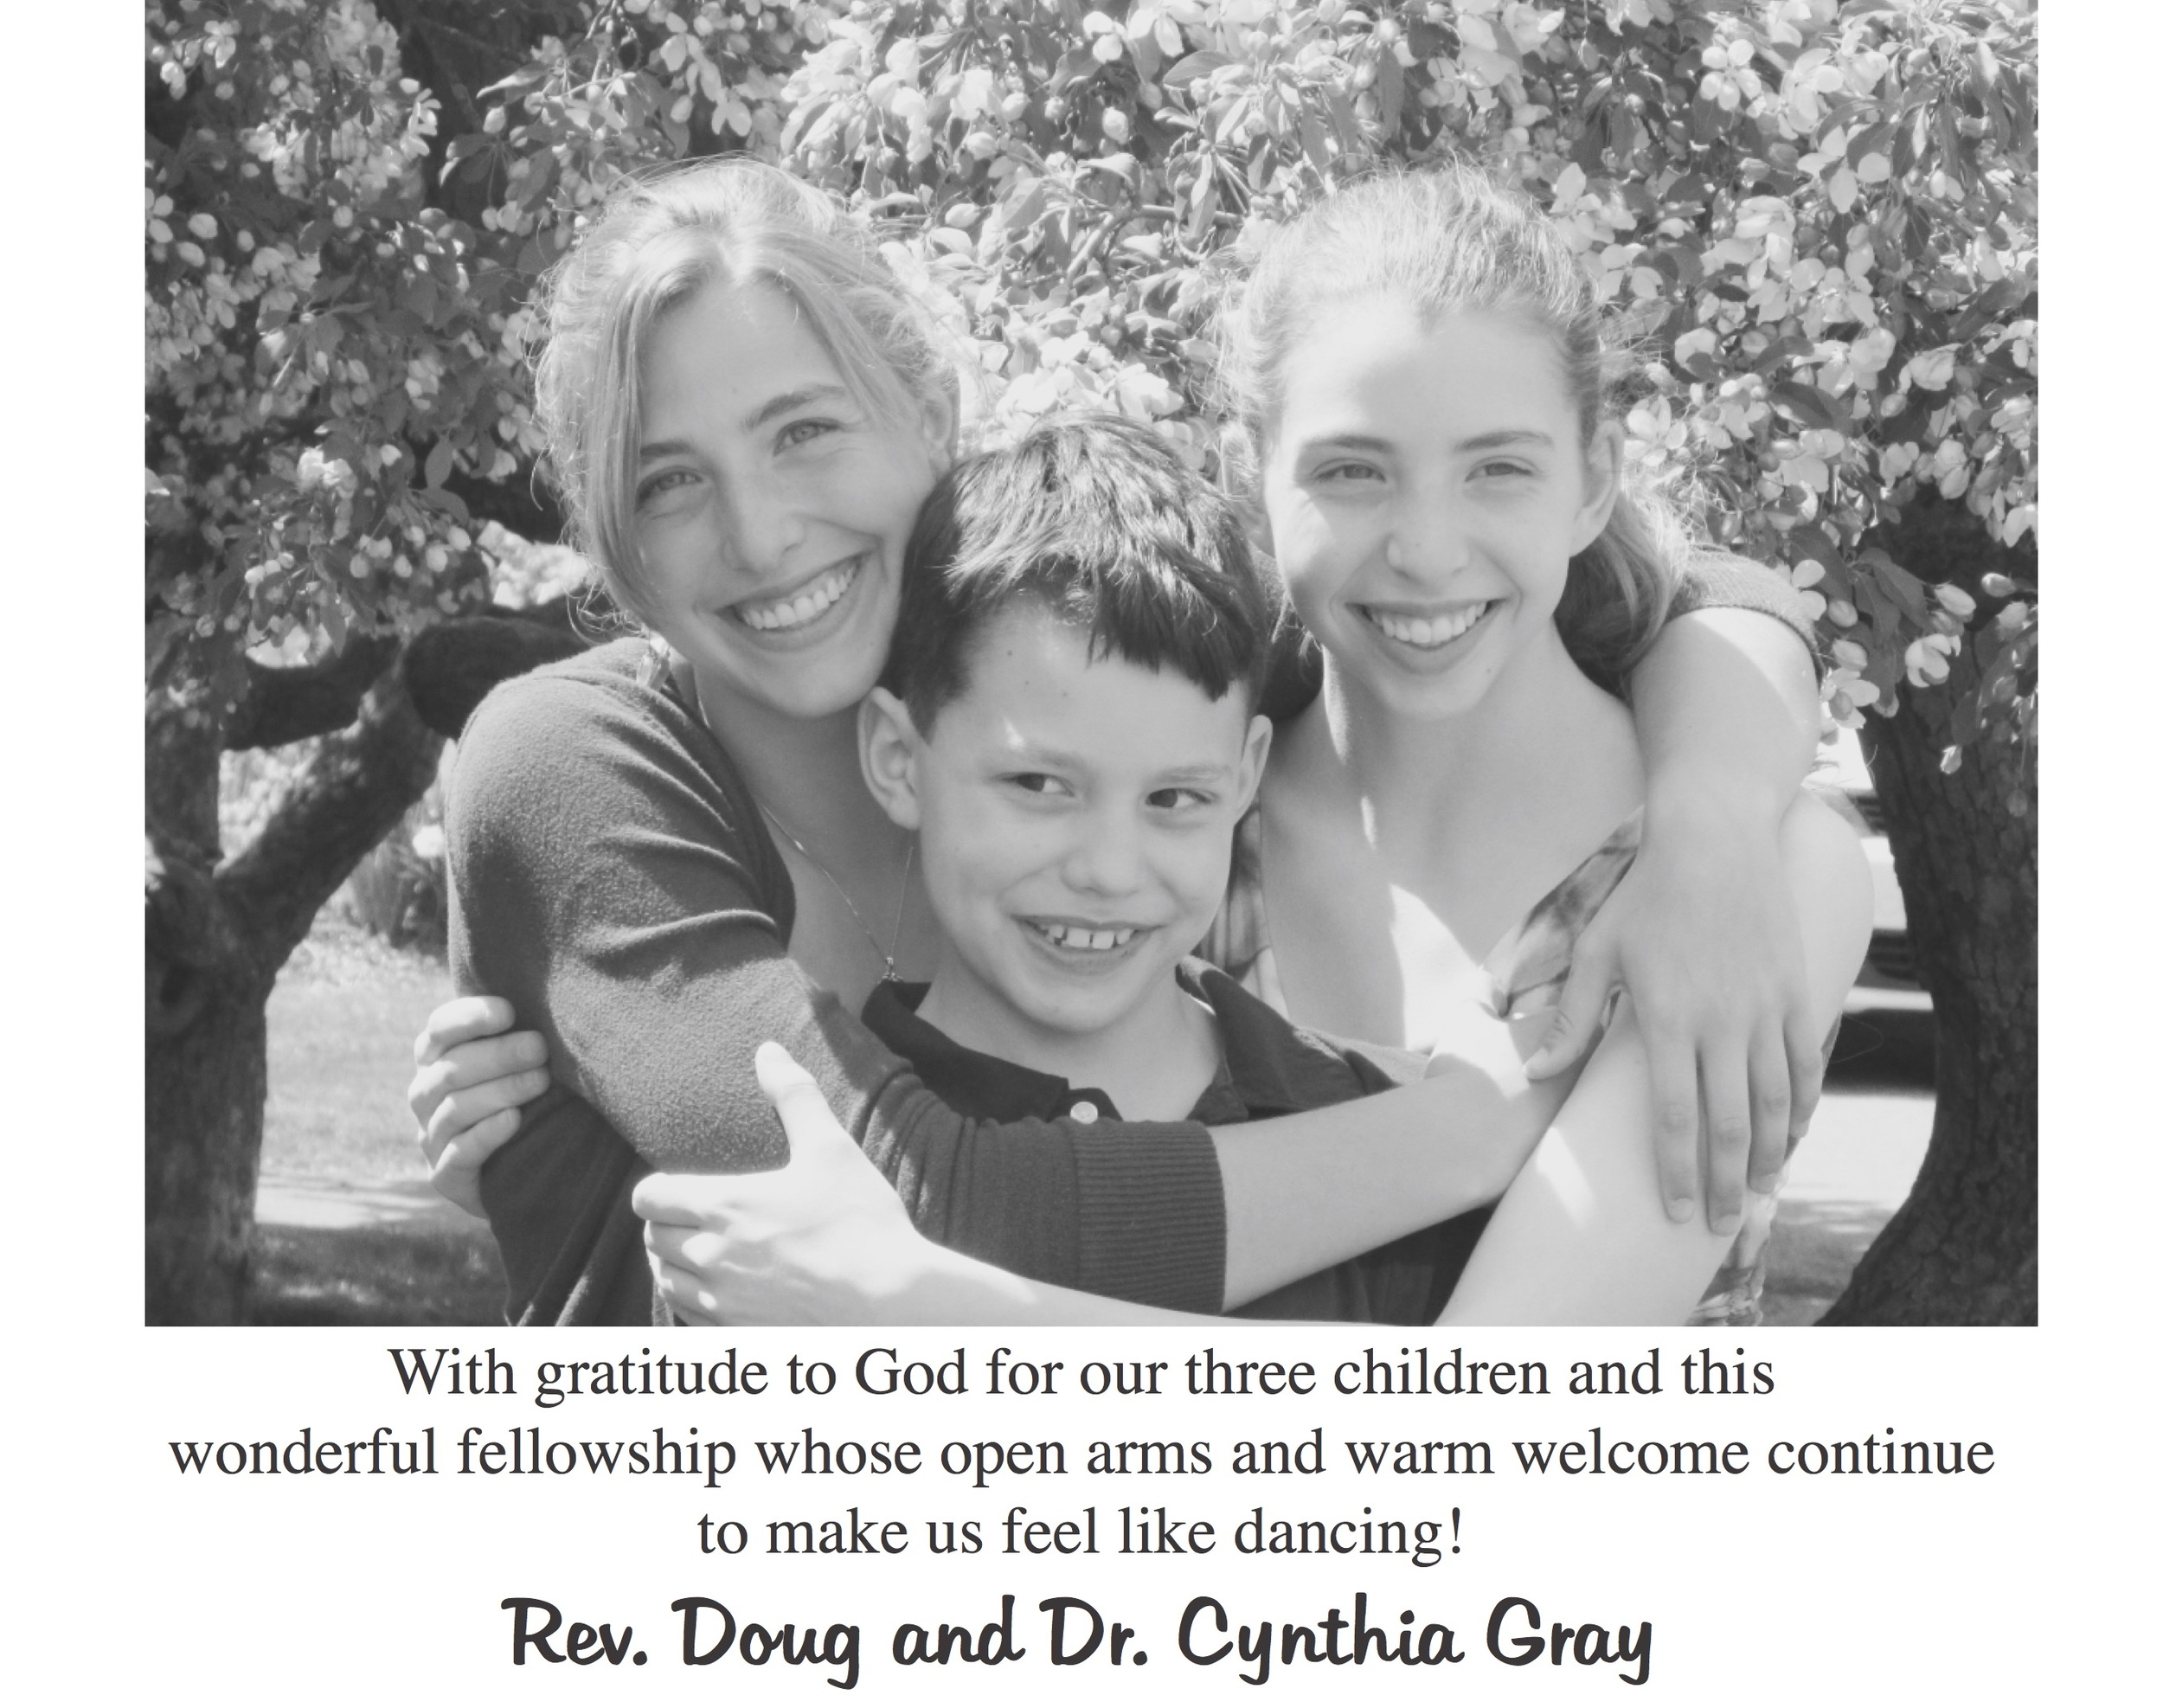 Rev. Doug and Dr. Cynthia Gray Family